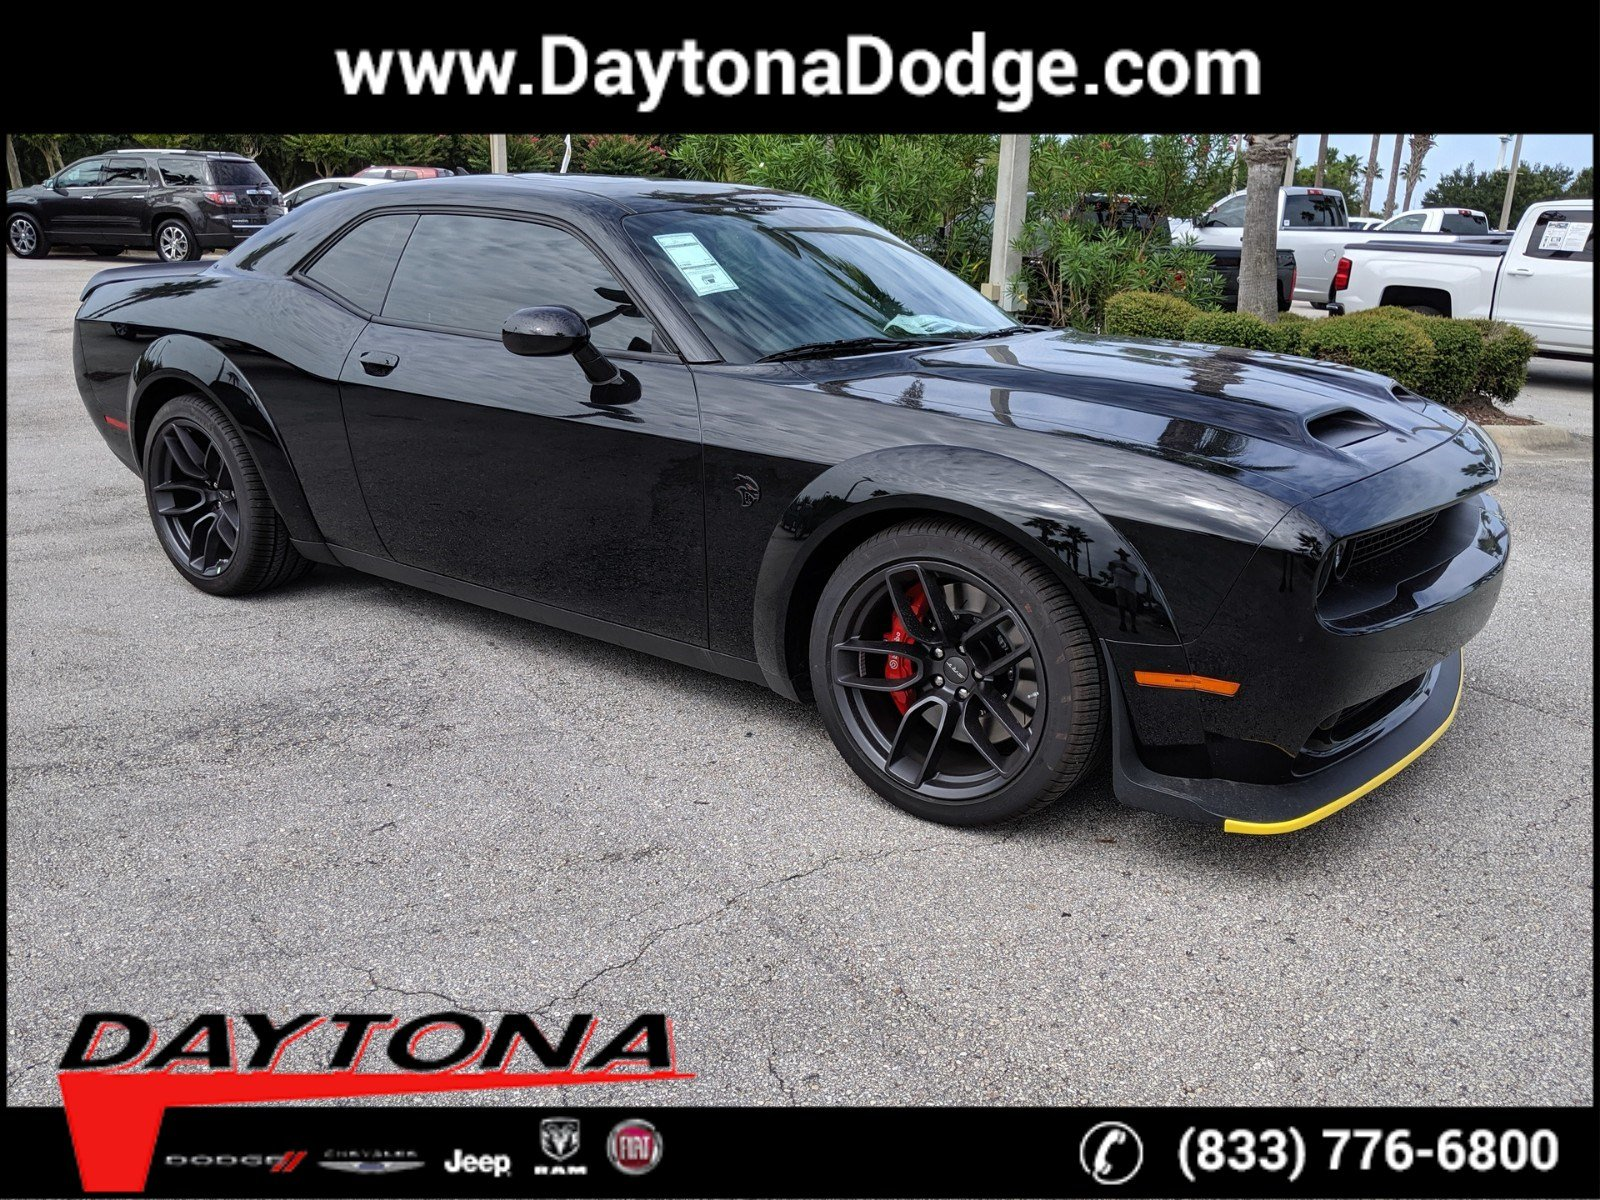 New 2019 DODGE Challenger SRT Hellcat Redeye Widebody